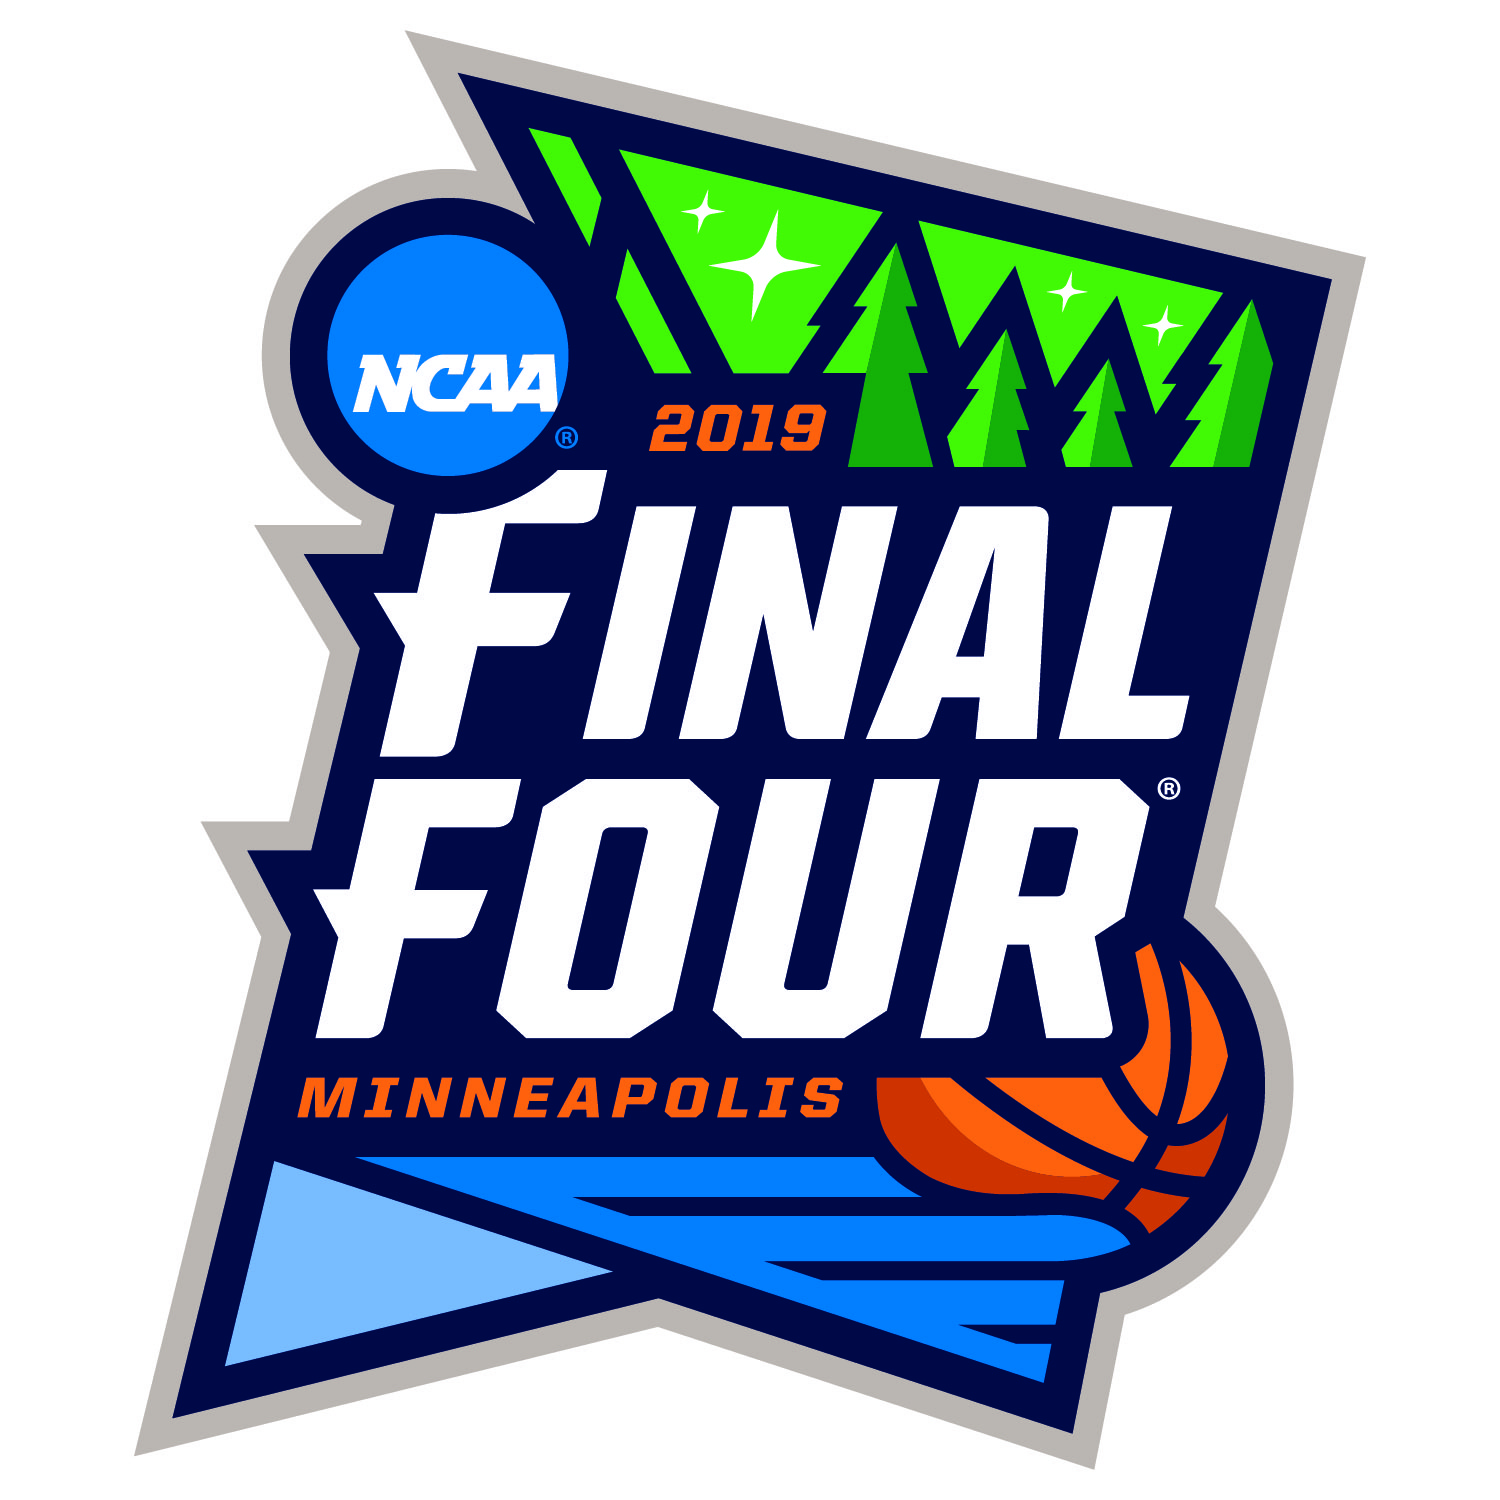 The NCAA Final Four logo for this year's March Madness in Minneapolis.